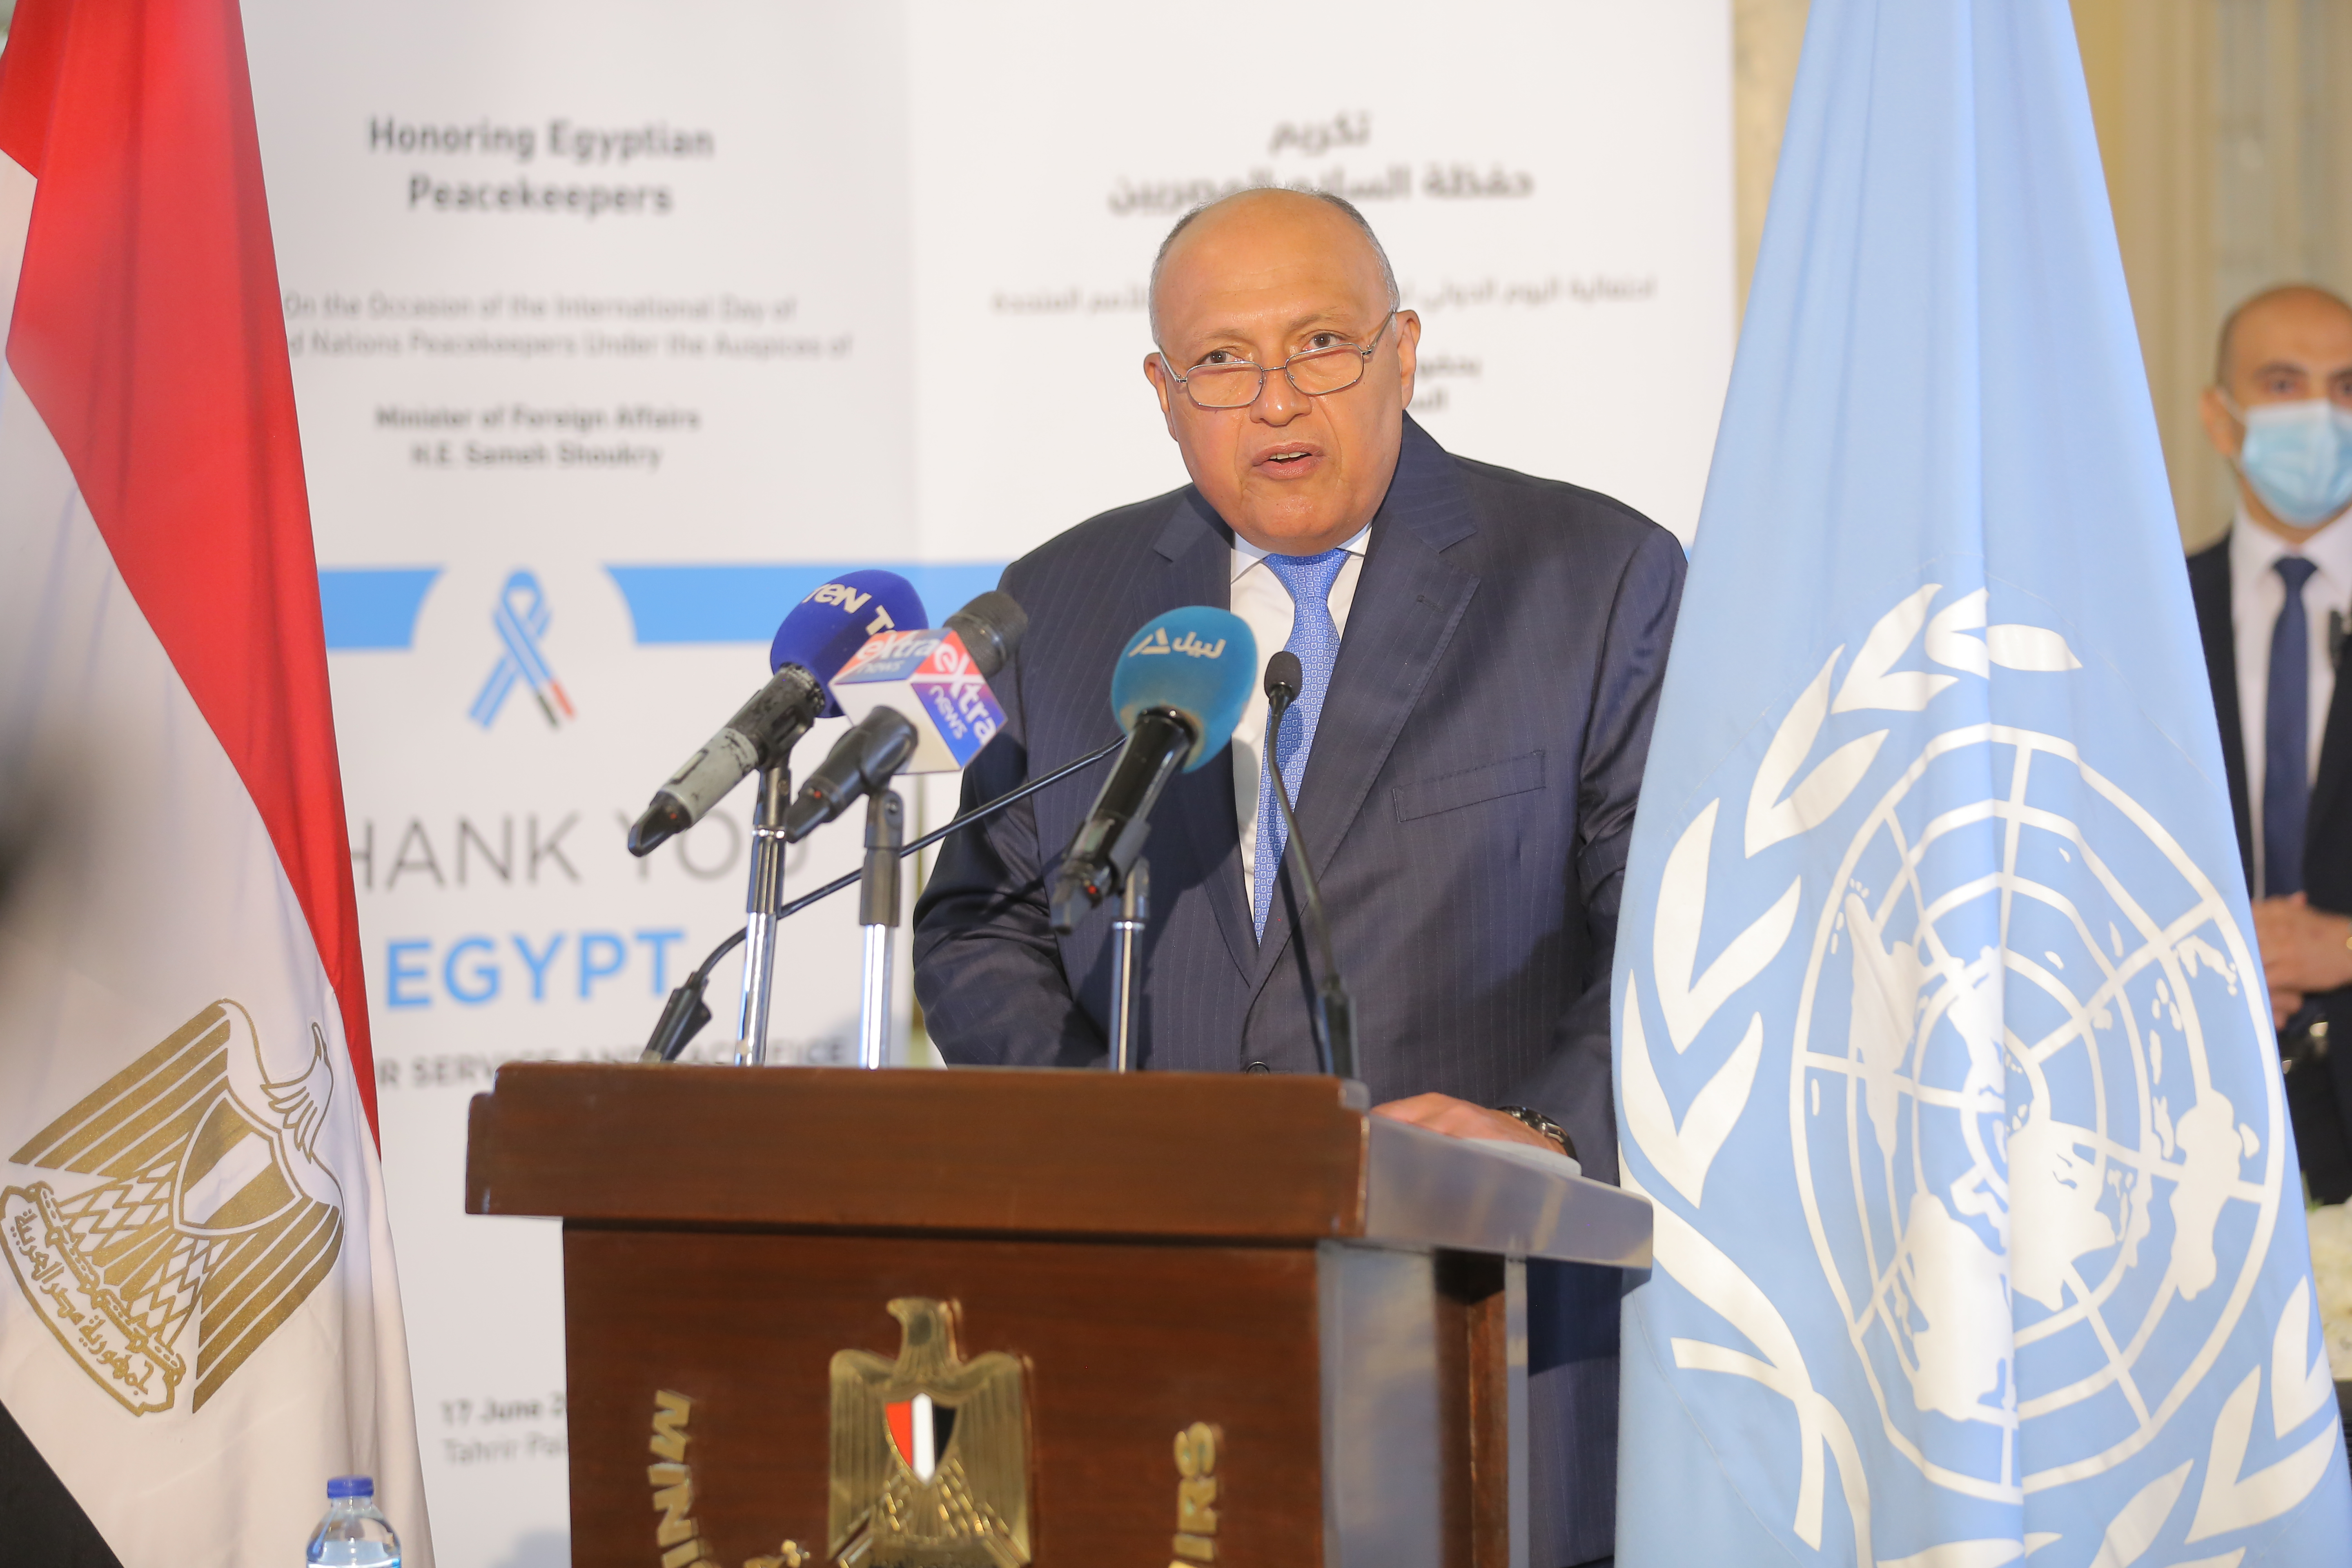 UN Peacekeepers service and sacrifice hailed in Egypt